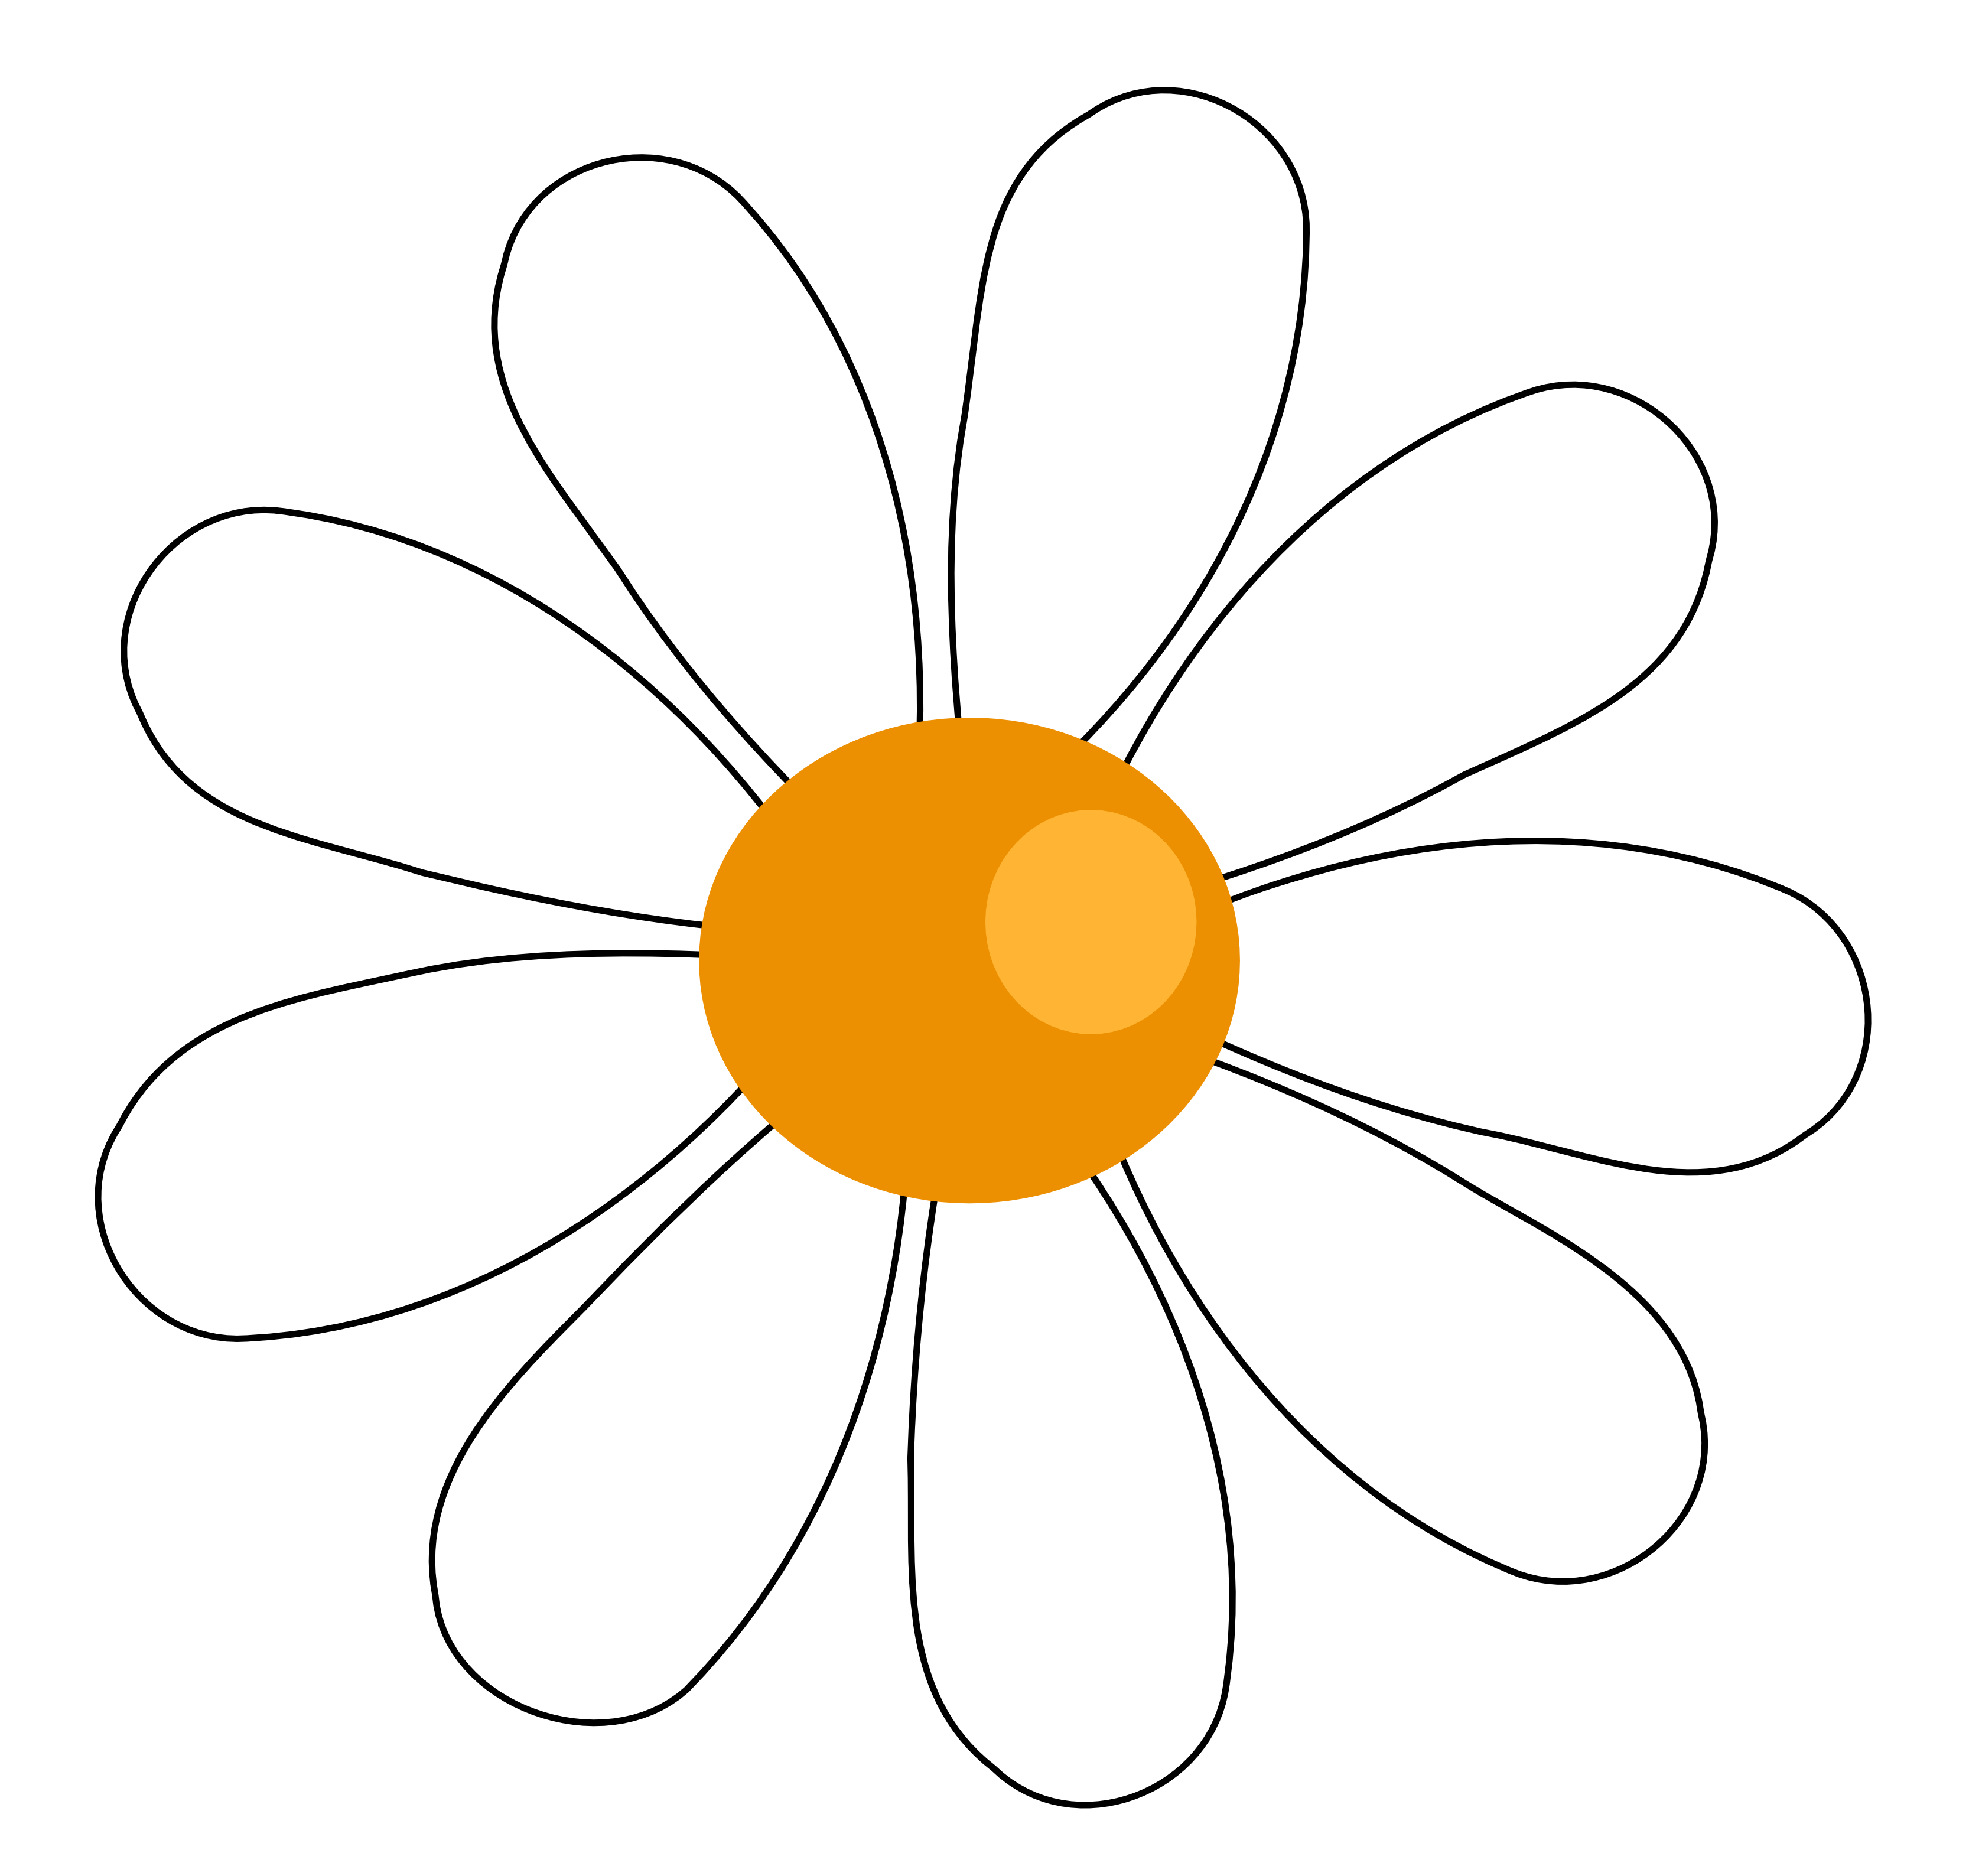 Daisy clipart #2, Download drawings